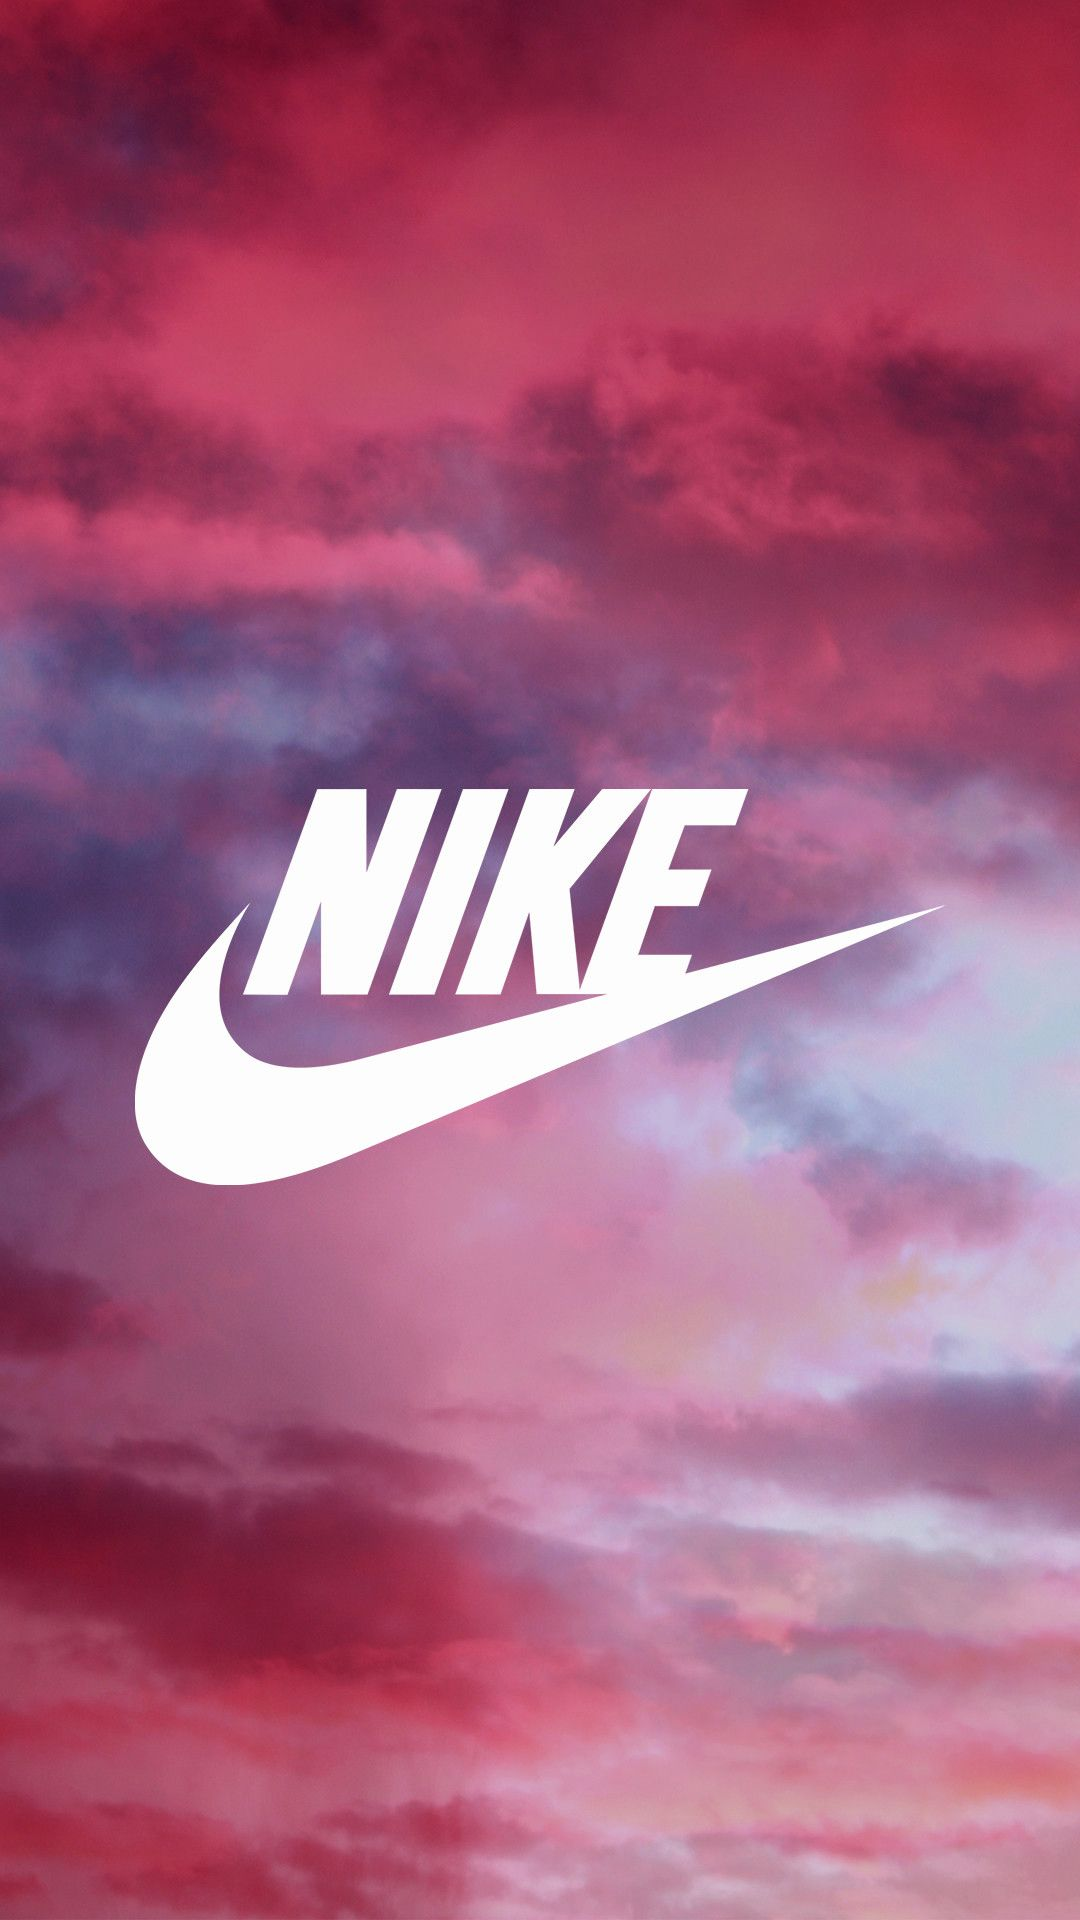 Girly Nike Wallpapers - Top gratis Girly Nike Fondos